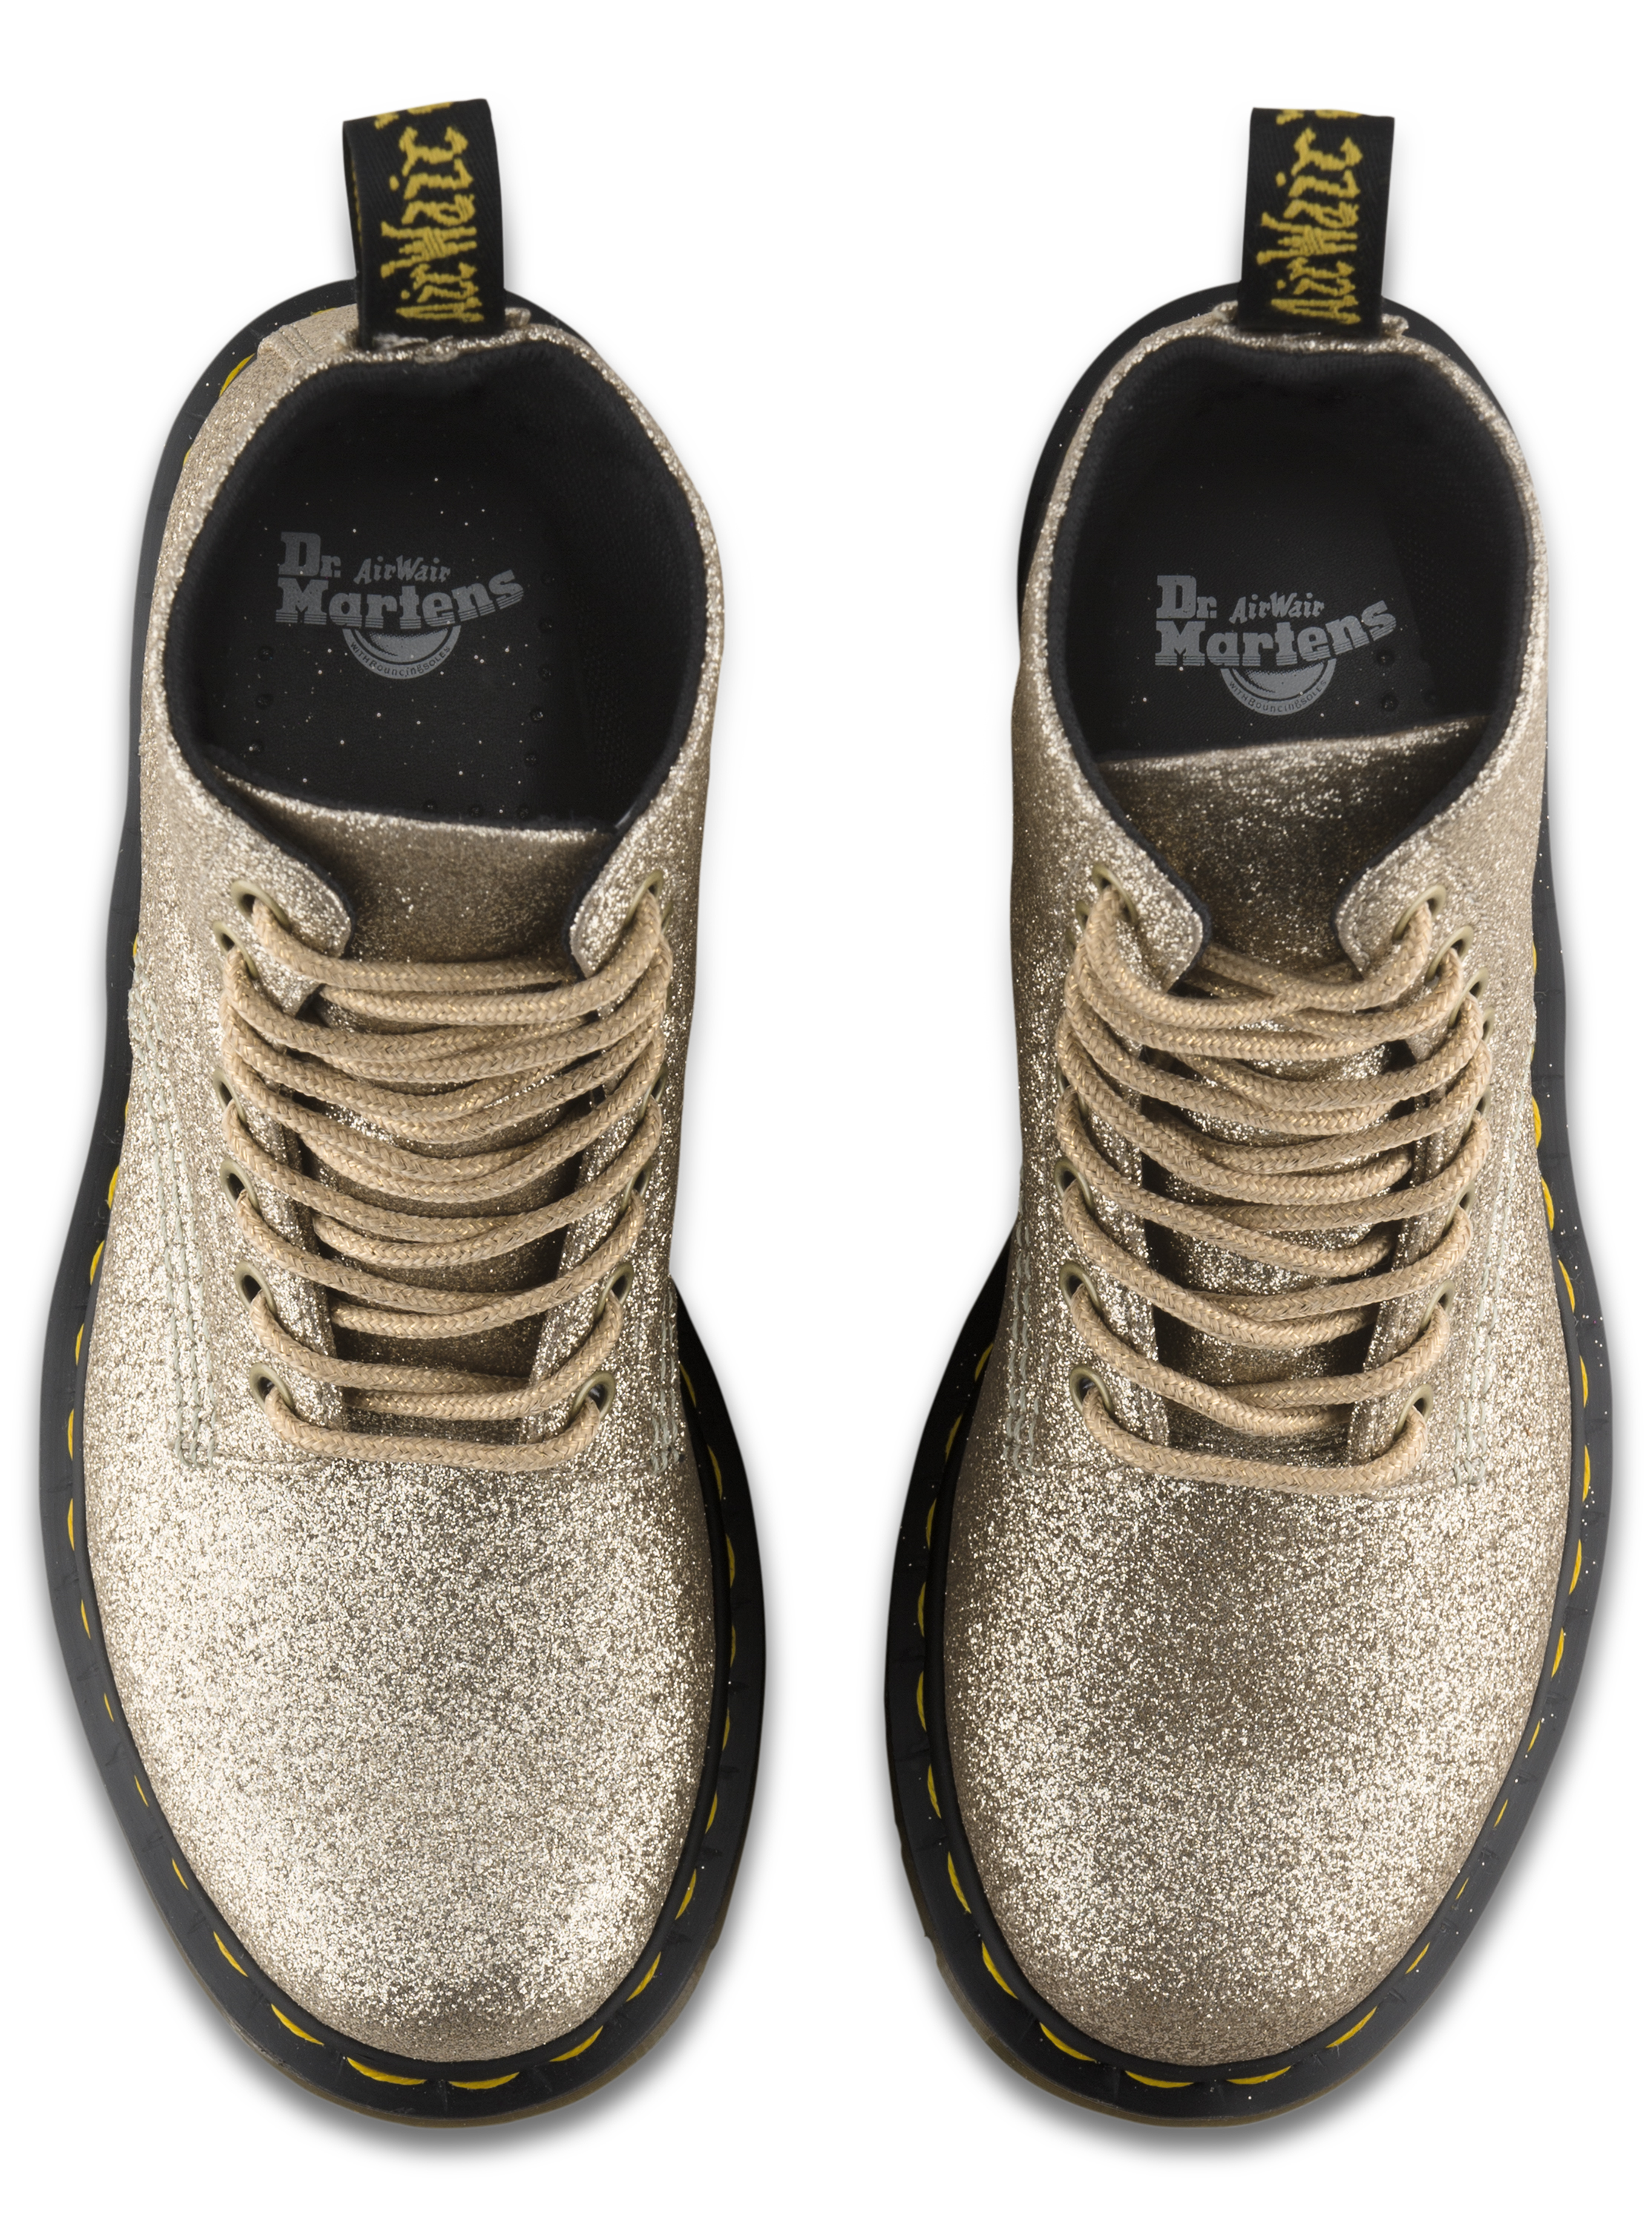 Put a little sparkle in your step with these glittery Dr